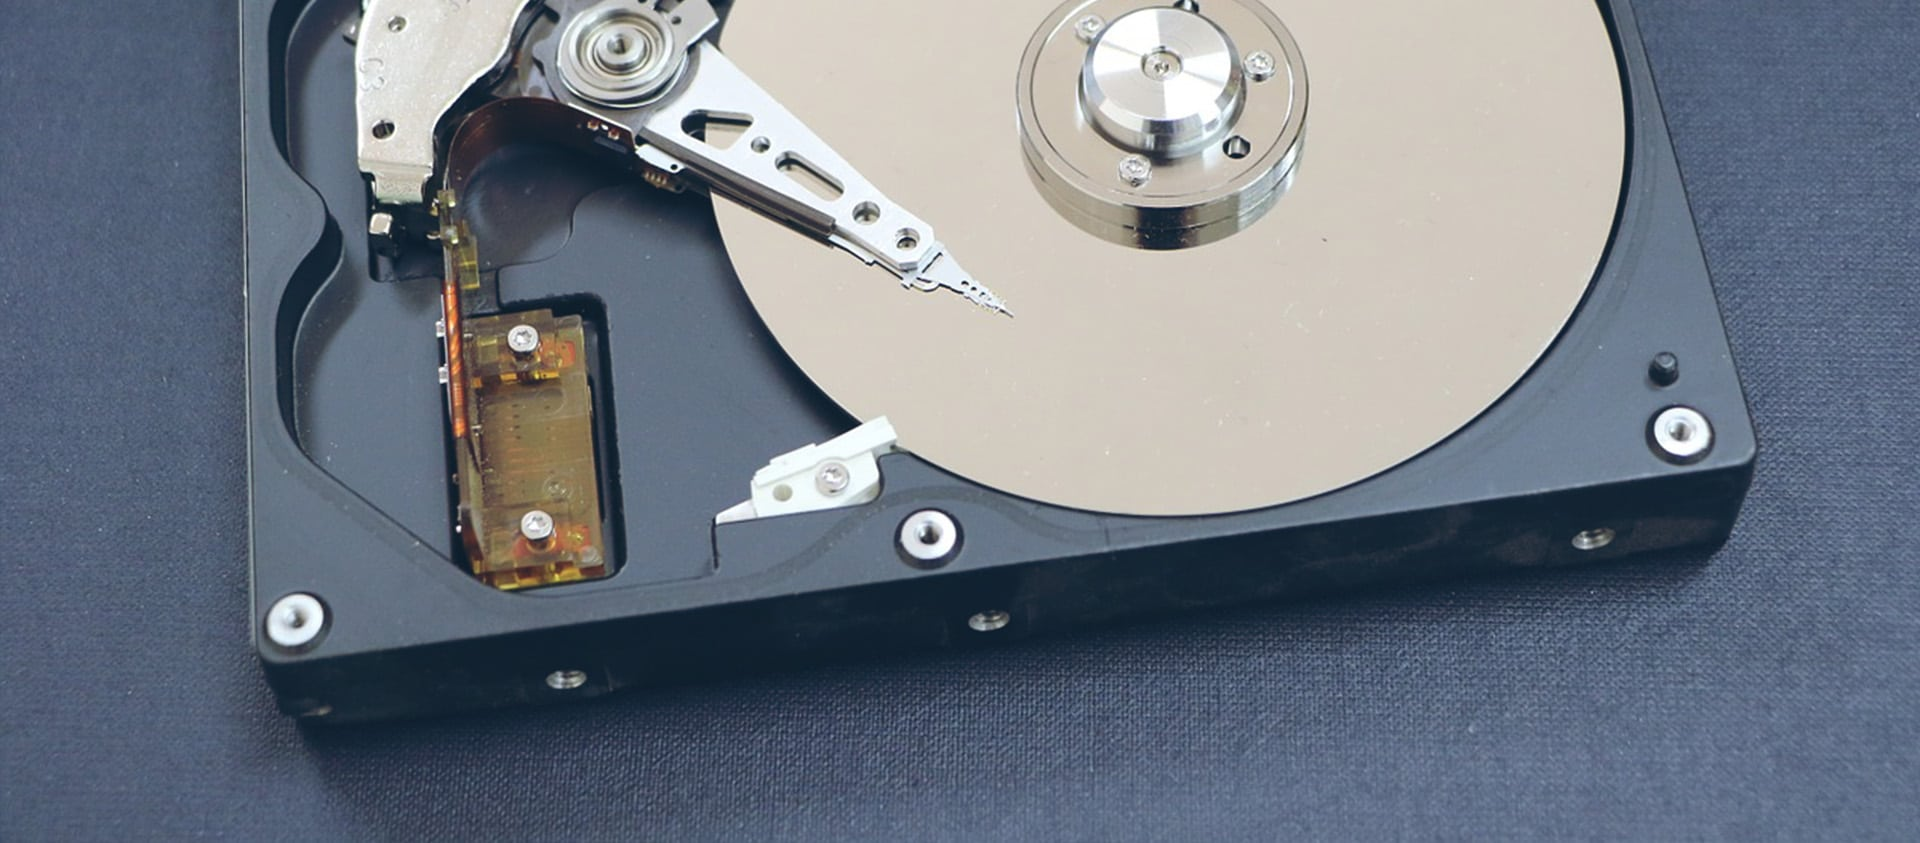 hdd manufacture